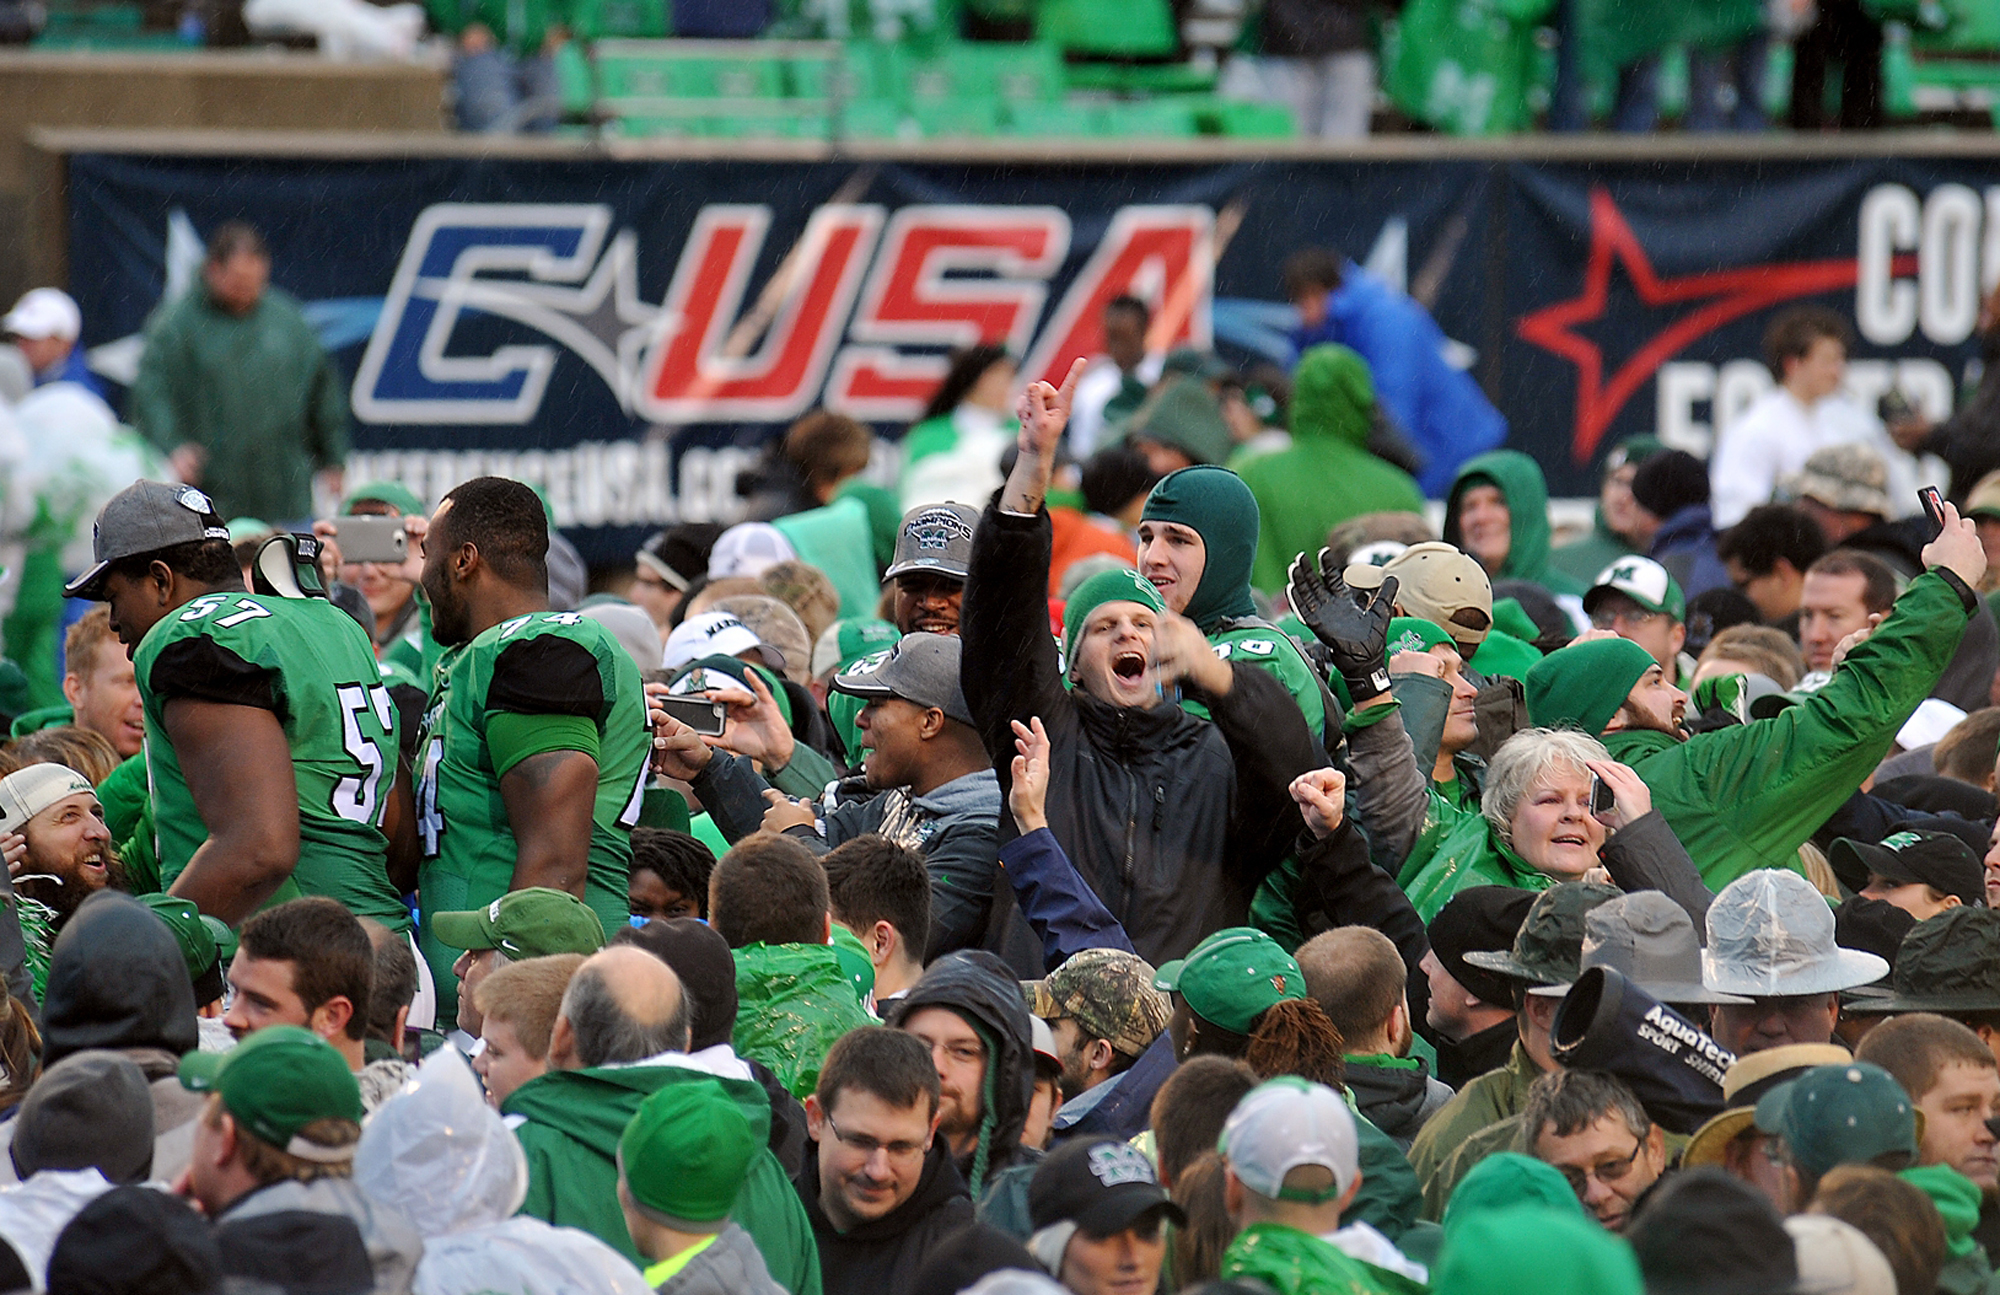 Marshall fans celebrate on the field after the school's 26-23 win over Louisiana Teach in the Conference USA championship NCAA college football game in Huntington, W.Va., Saturday Dec. 6, 2014. (AP Photo/Chris Tilley)